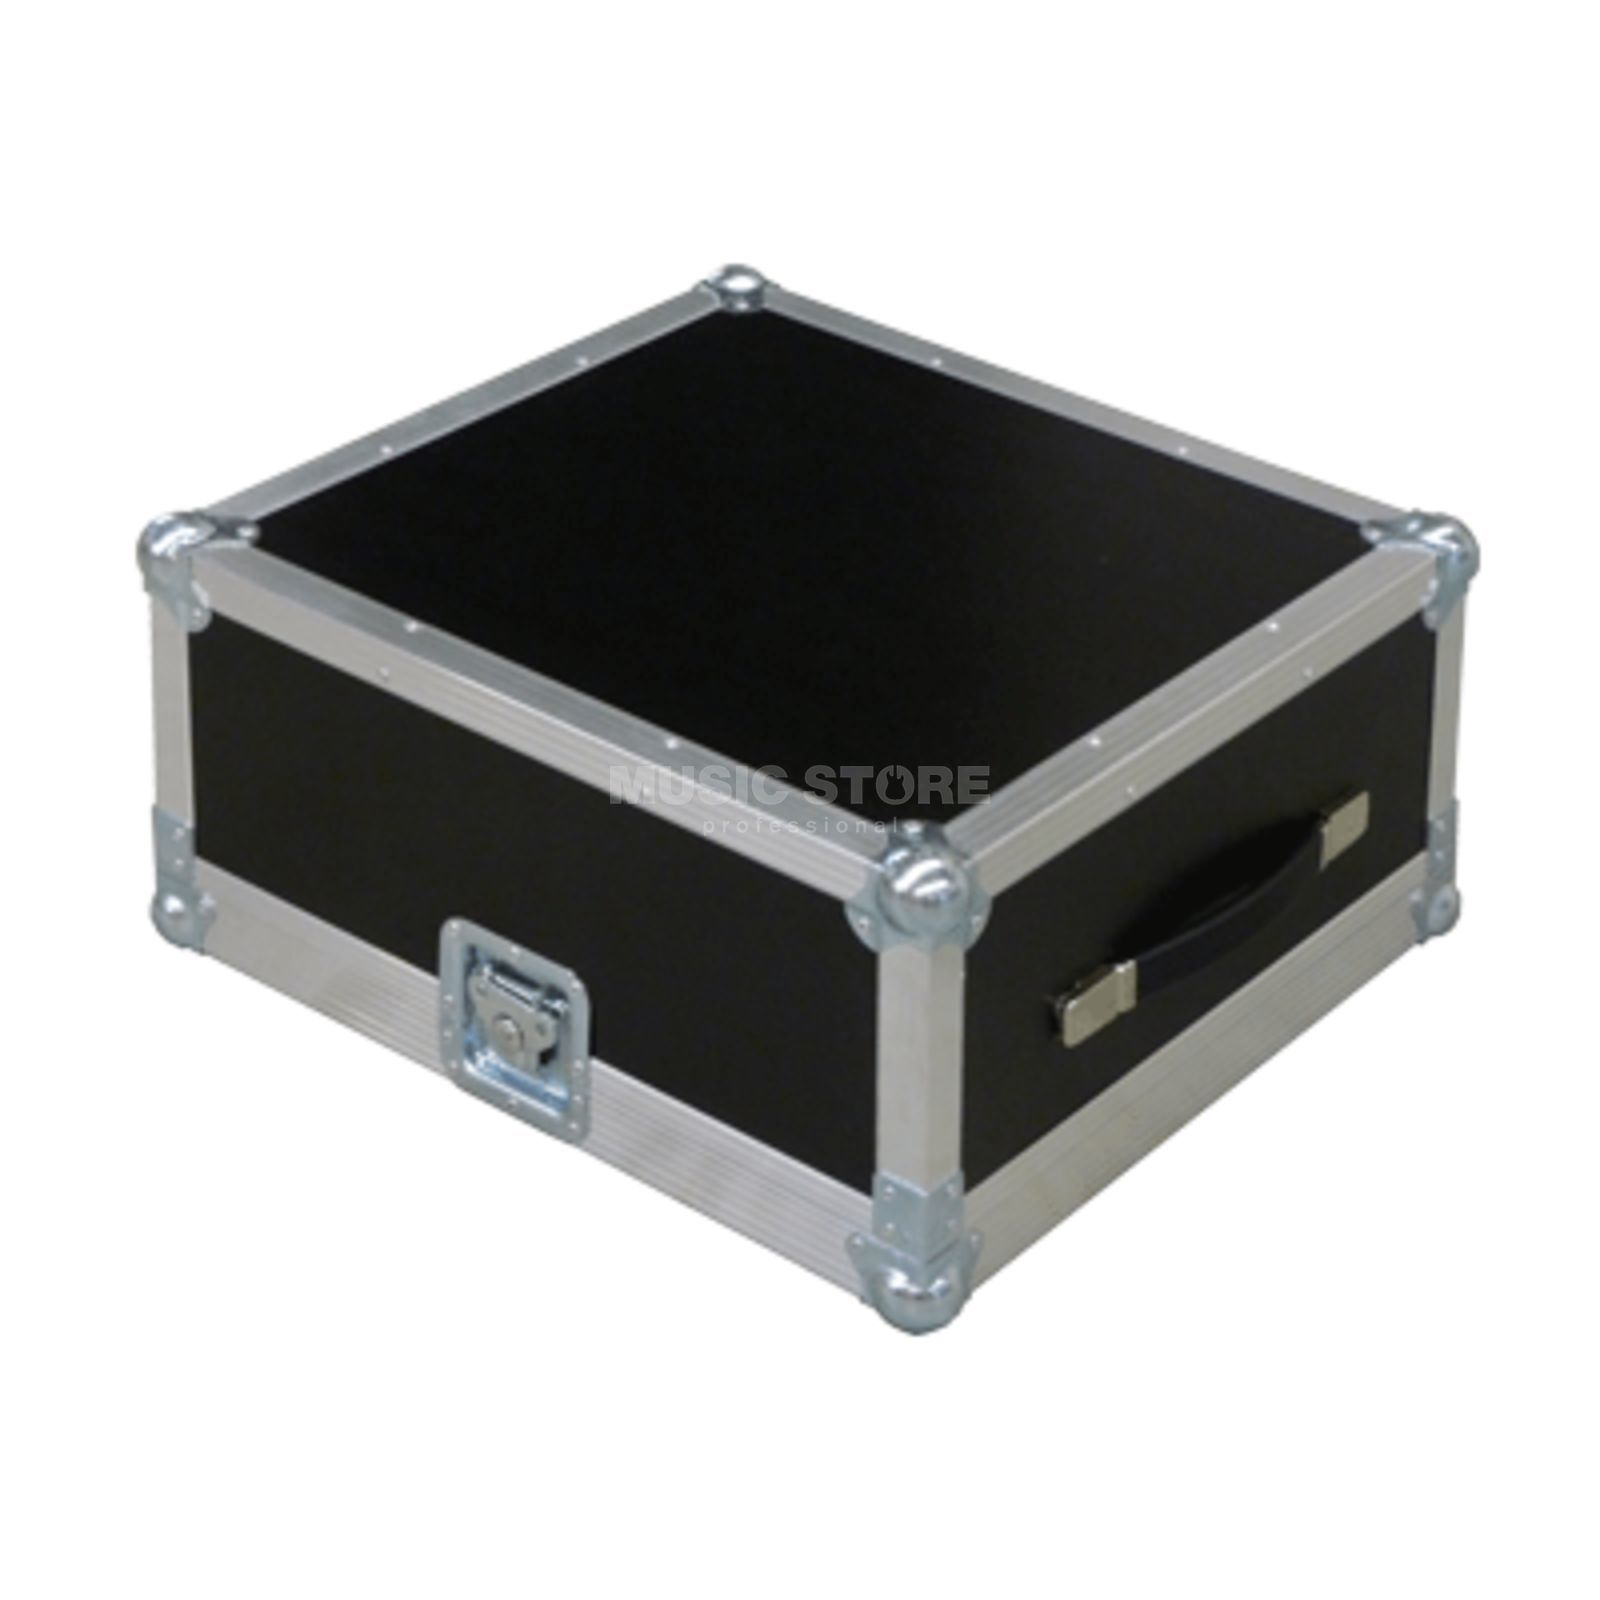 MUSIC STORE case - Phonic Helixboard 24 6,5mm hout PH-zwart Productafbeelding